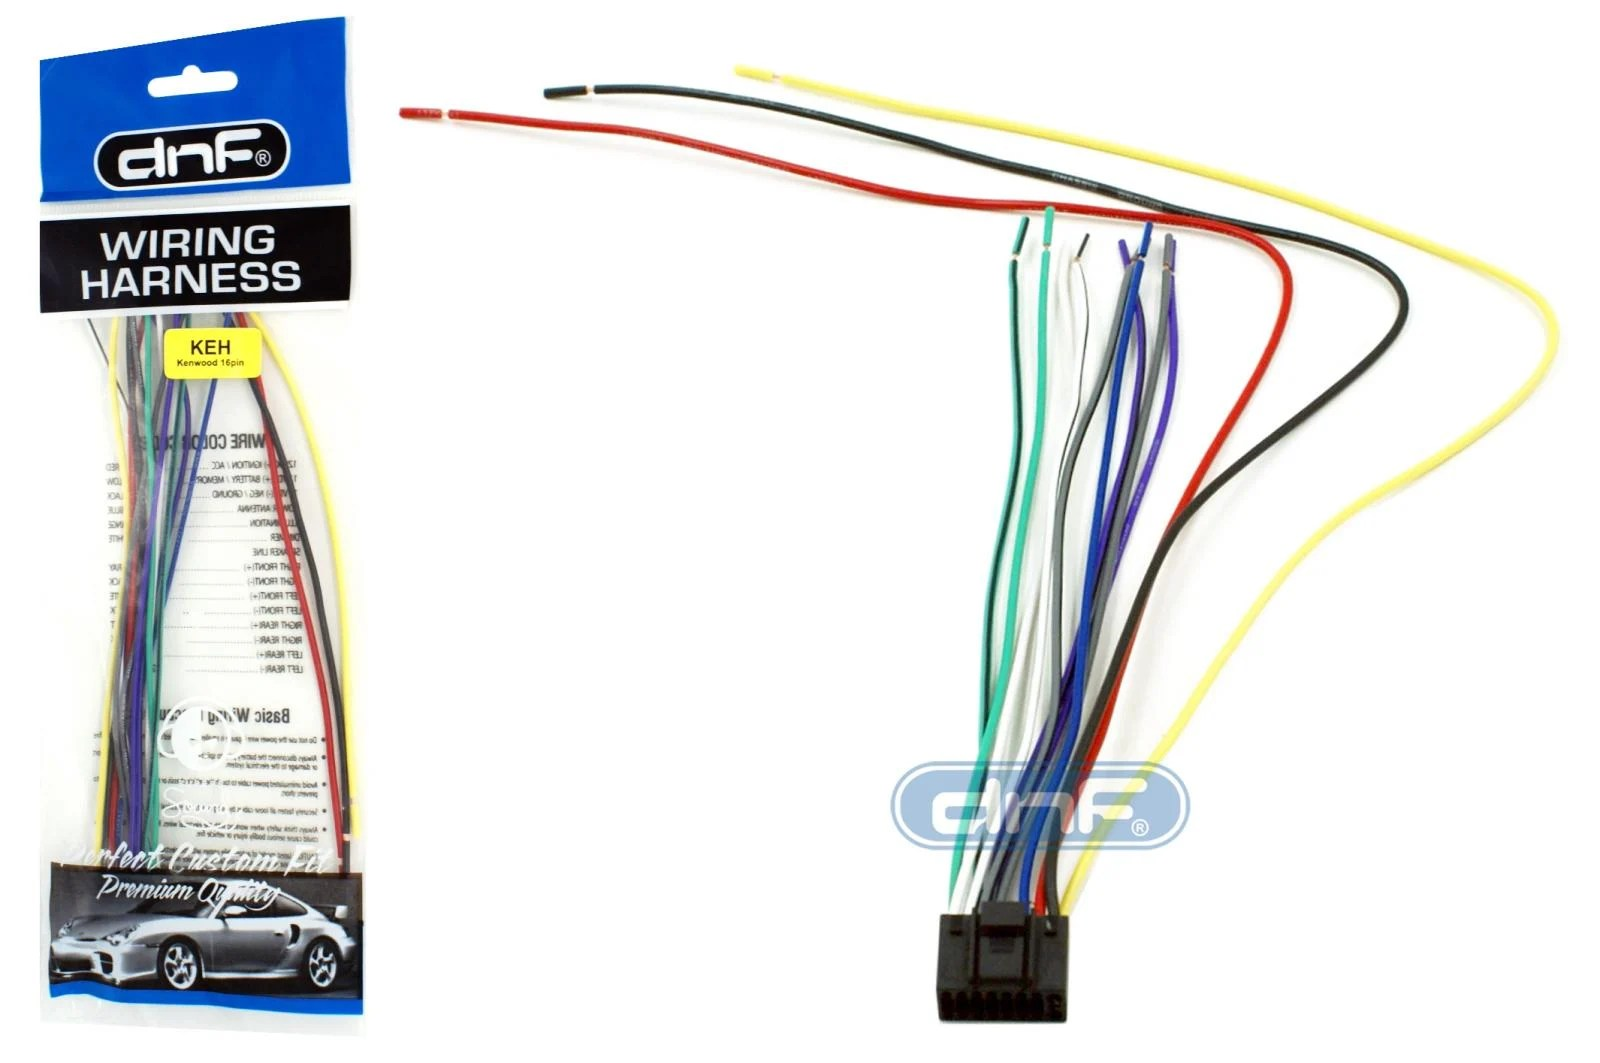 hight resolution of kenwood kdc 138 wiring harness wiring librarykenwood wiring harness 16 pin kdc 138 kdc 215s kdc